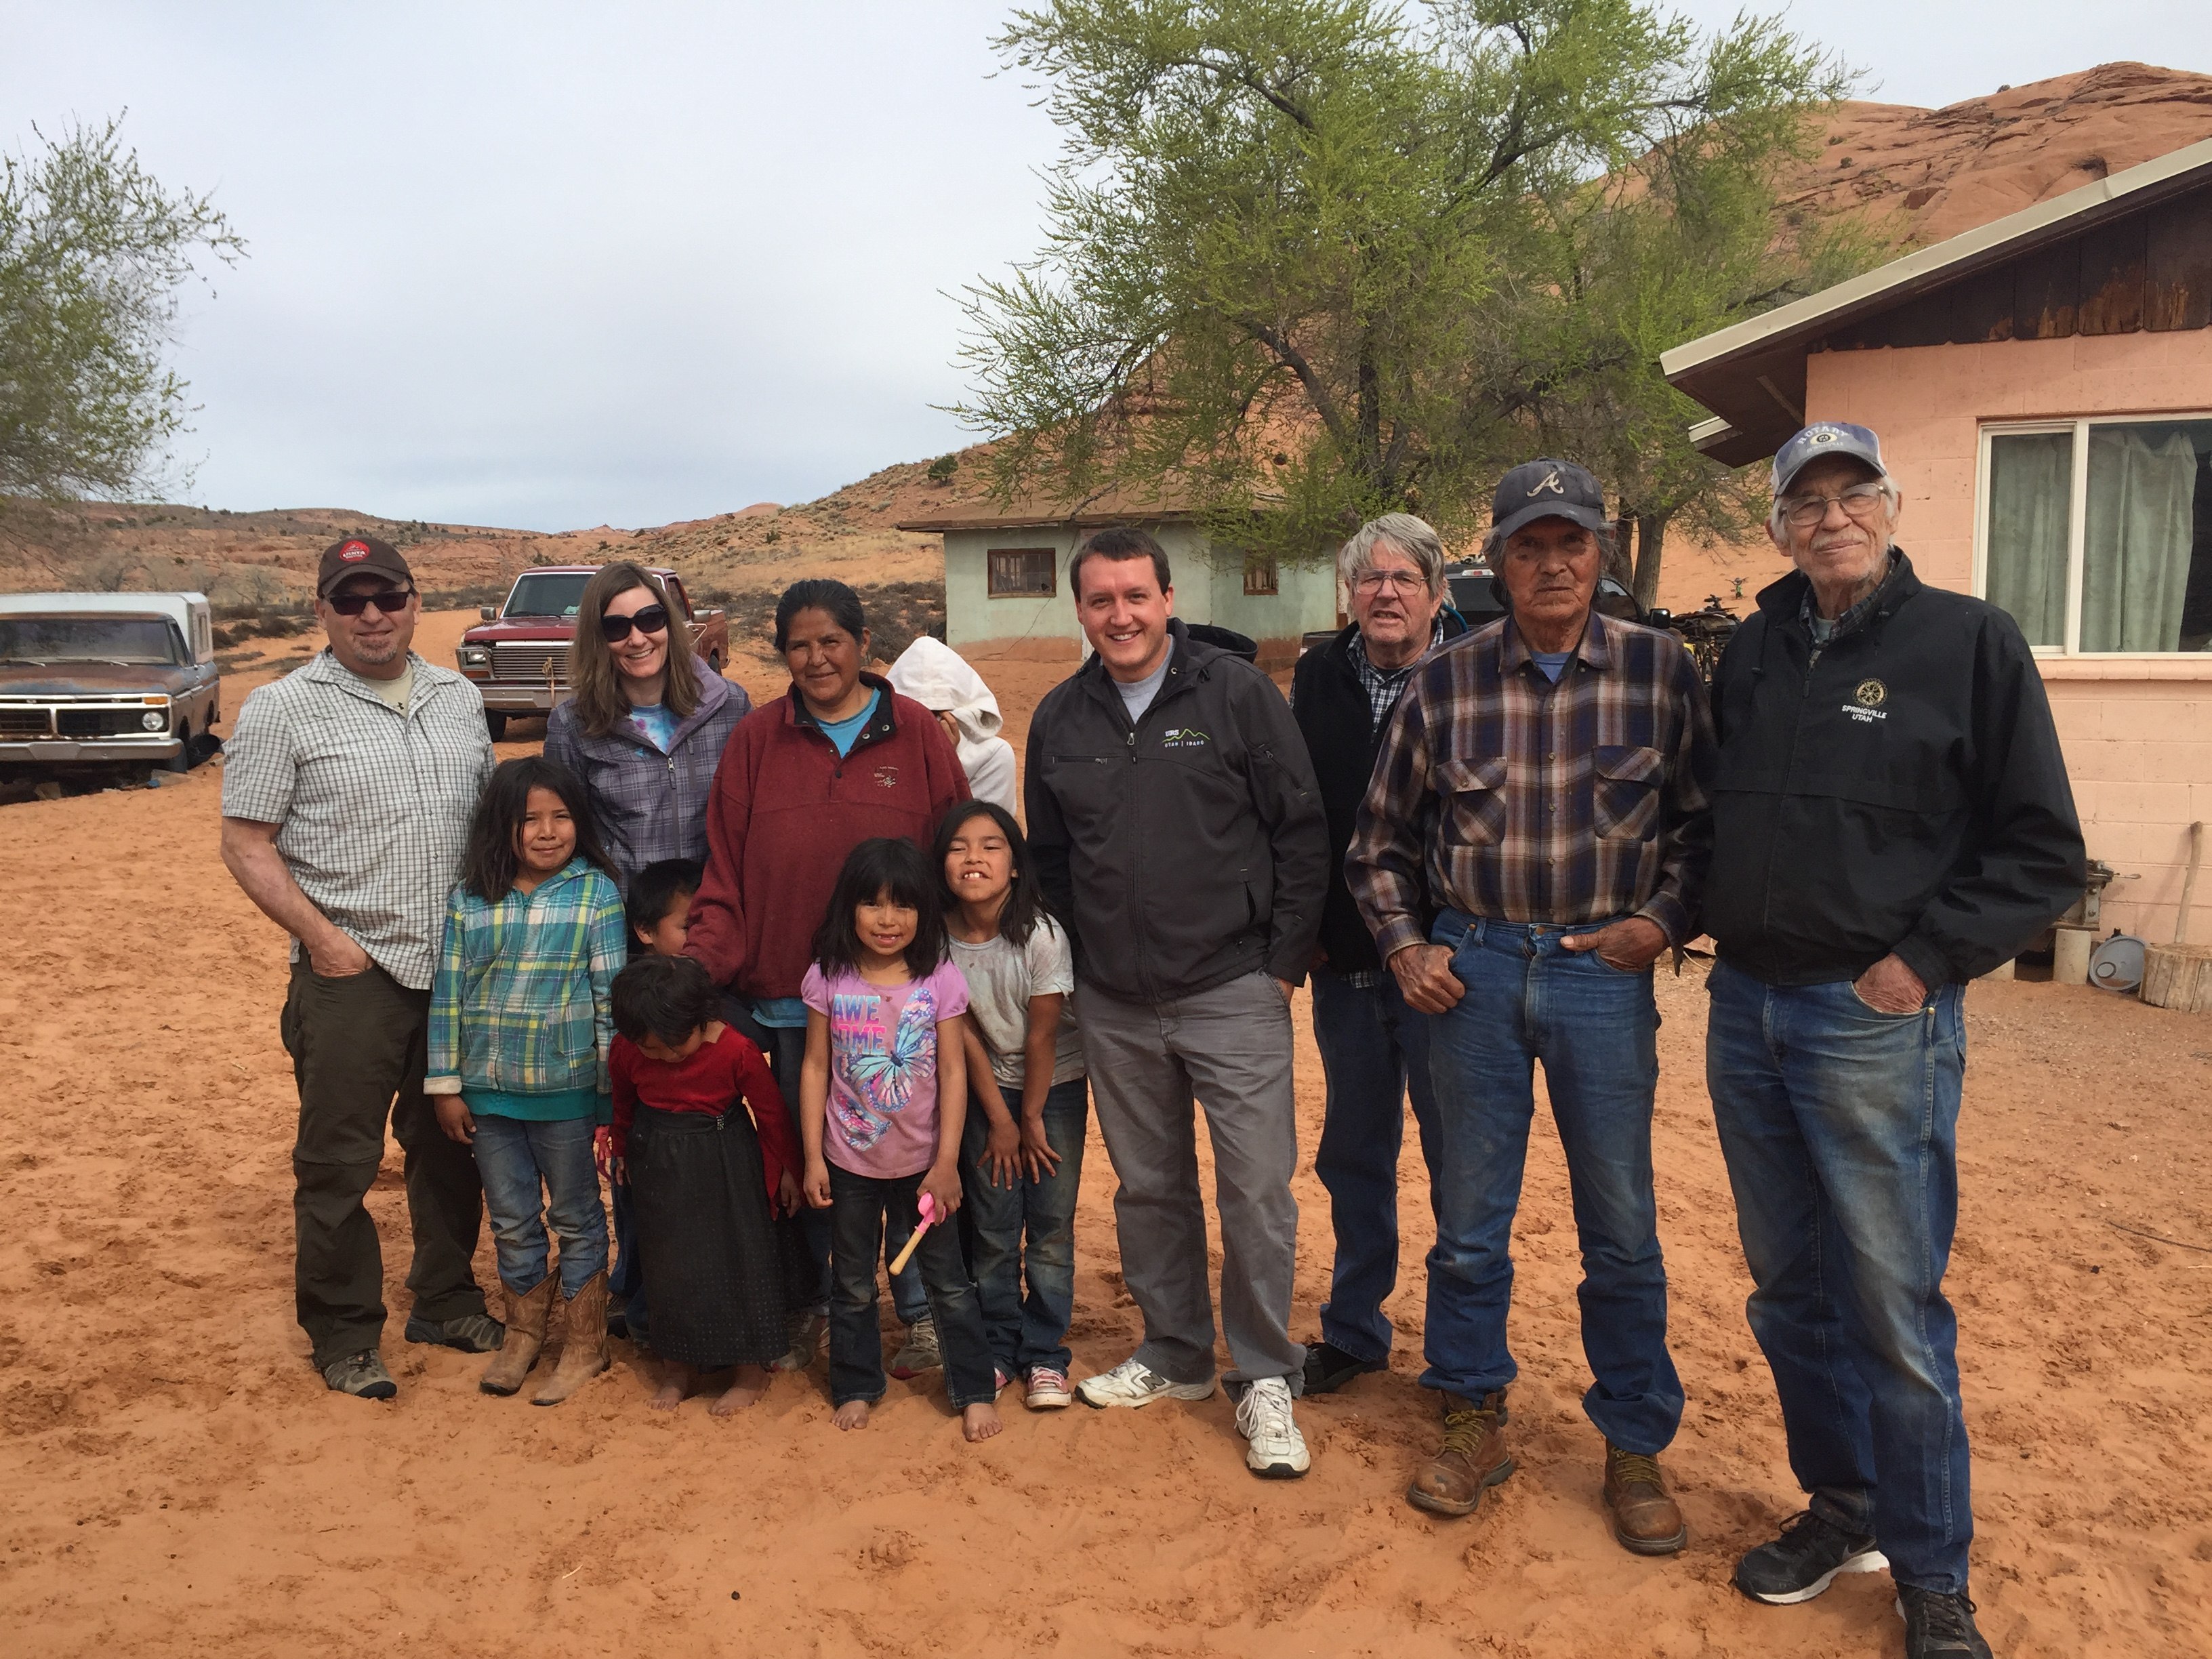 Community elder John Lowe and family